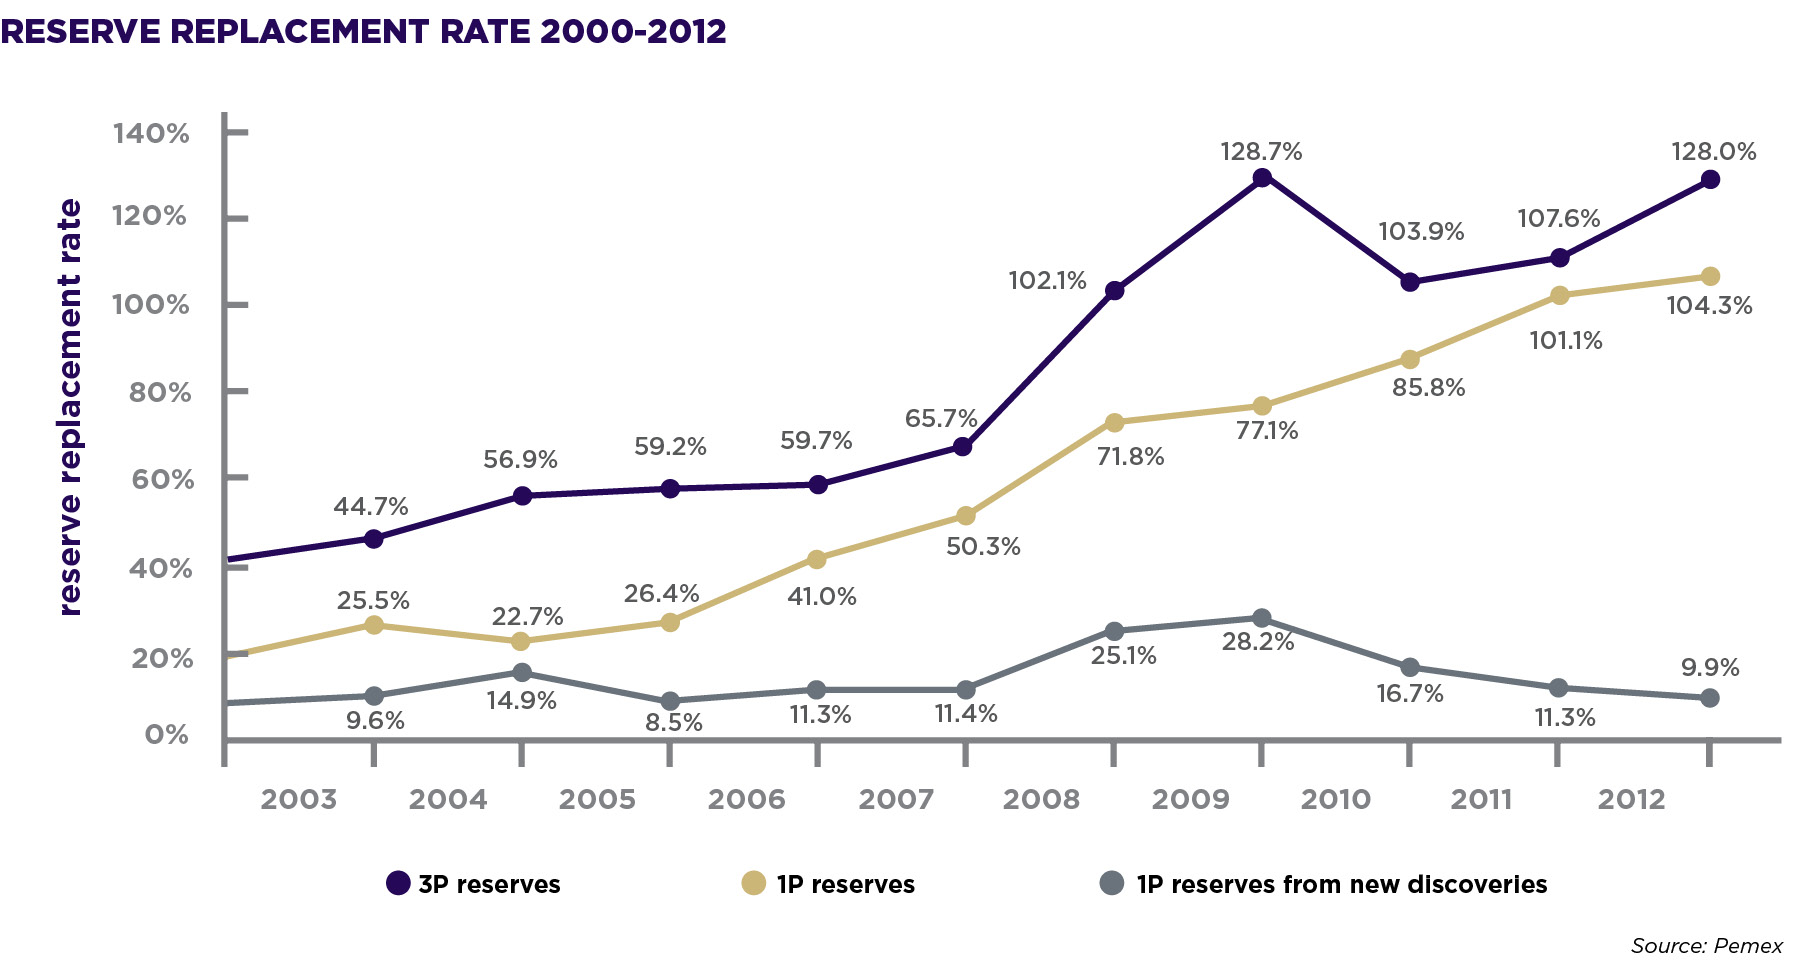 RESERVE REPLACEMENT RATE 2000-2012